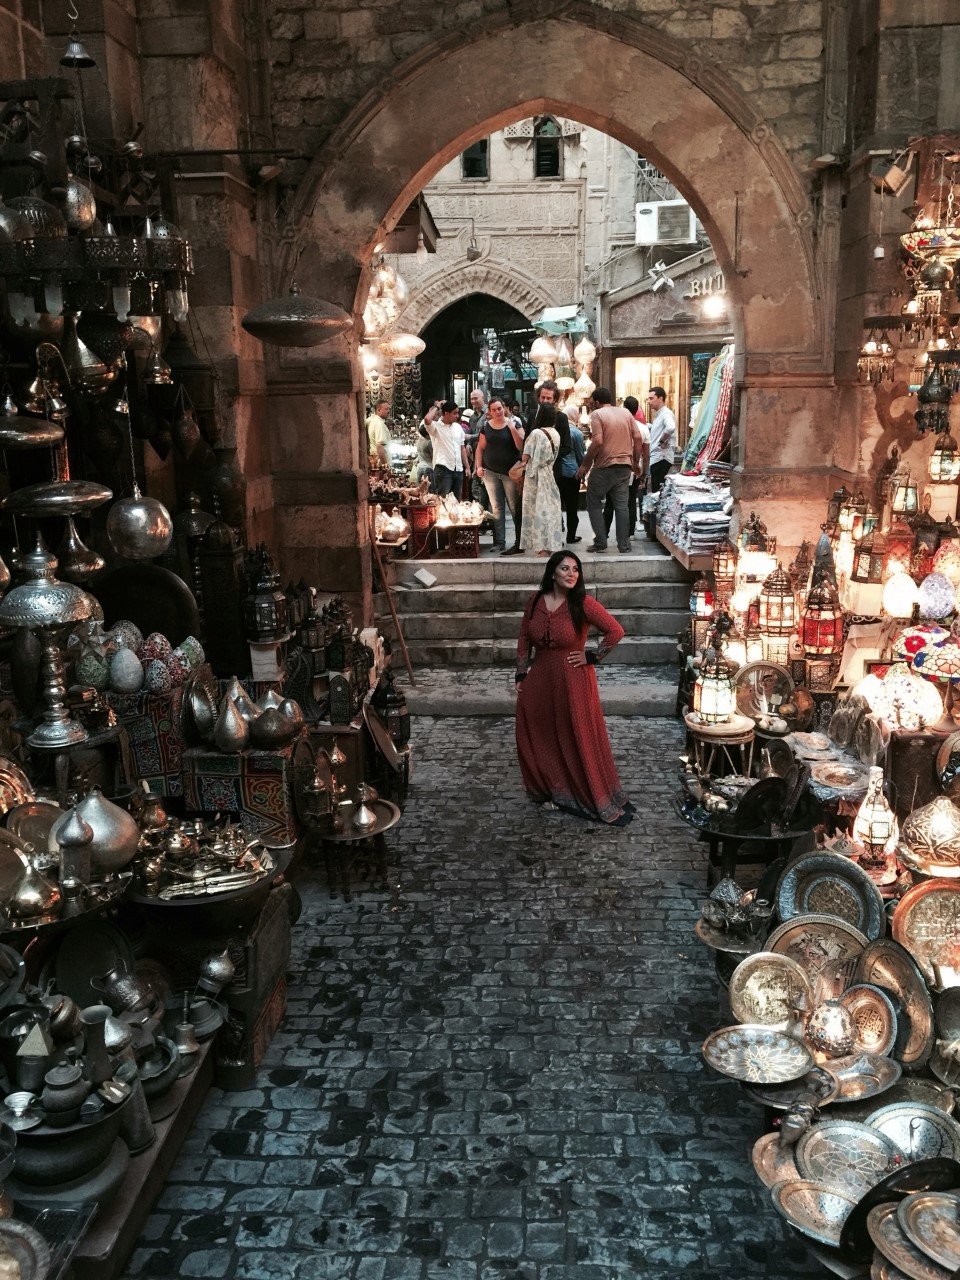 KHAN AL KHALILI BAZAAR - Aladdin vibes at this intricate and beautiful souk in the Islamic district of Cairo.